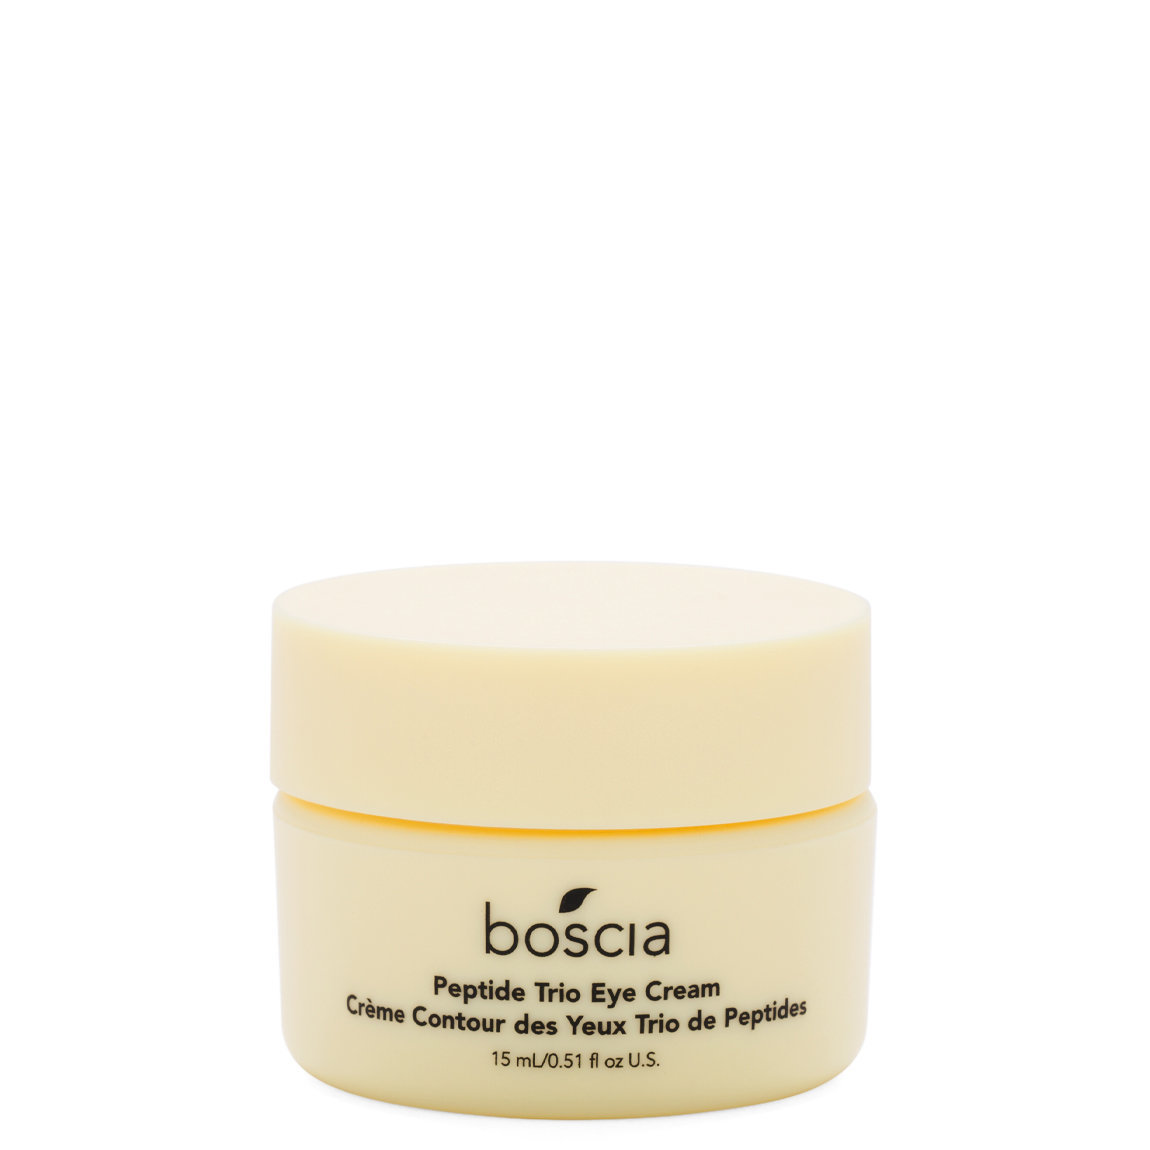 boscia Peptide Trio Eye Cream product smear.